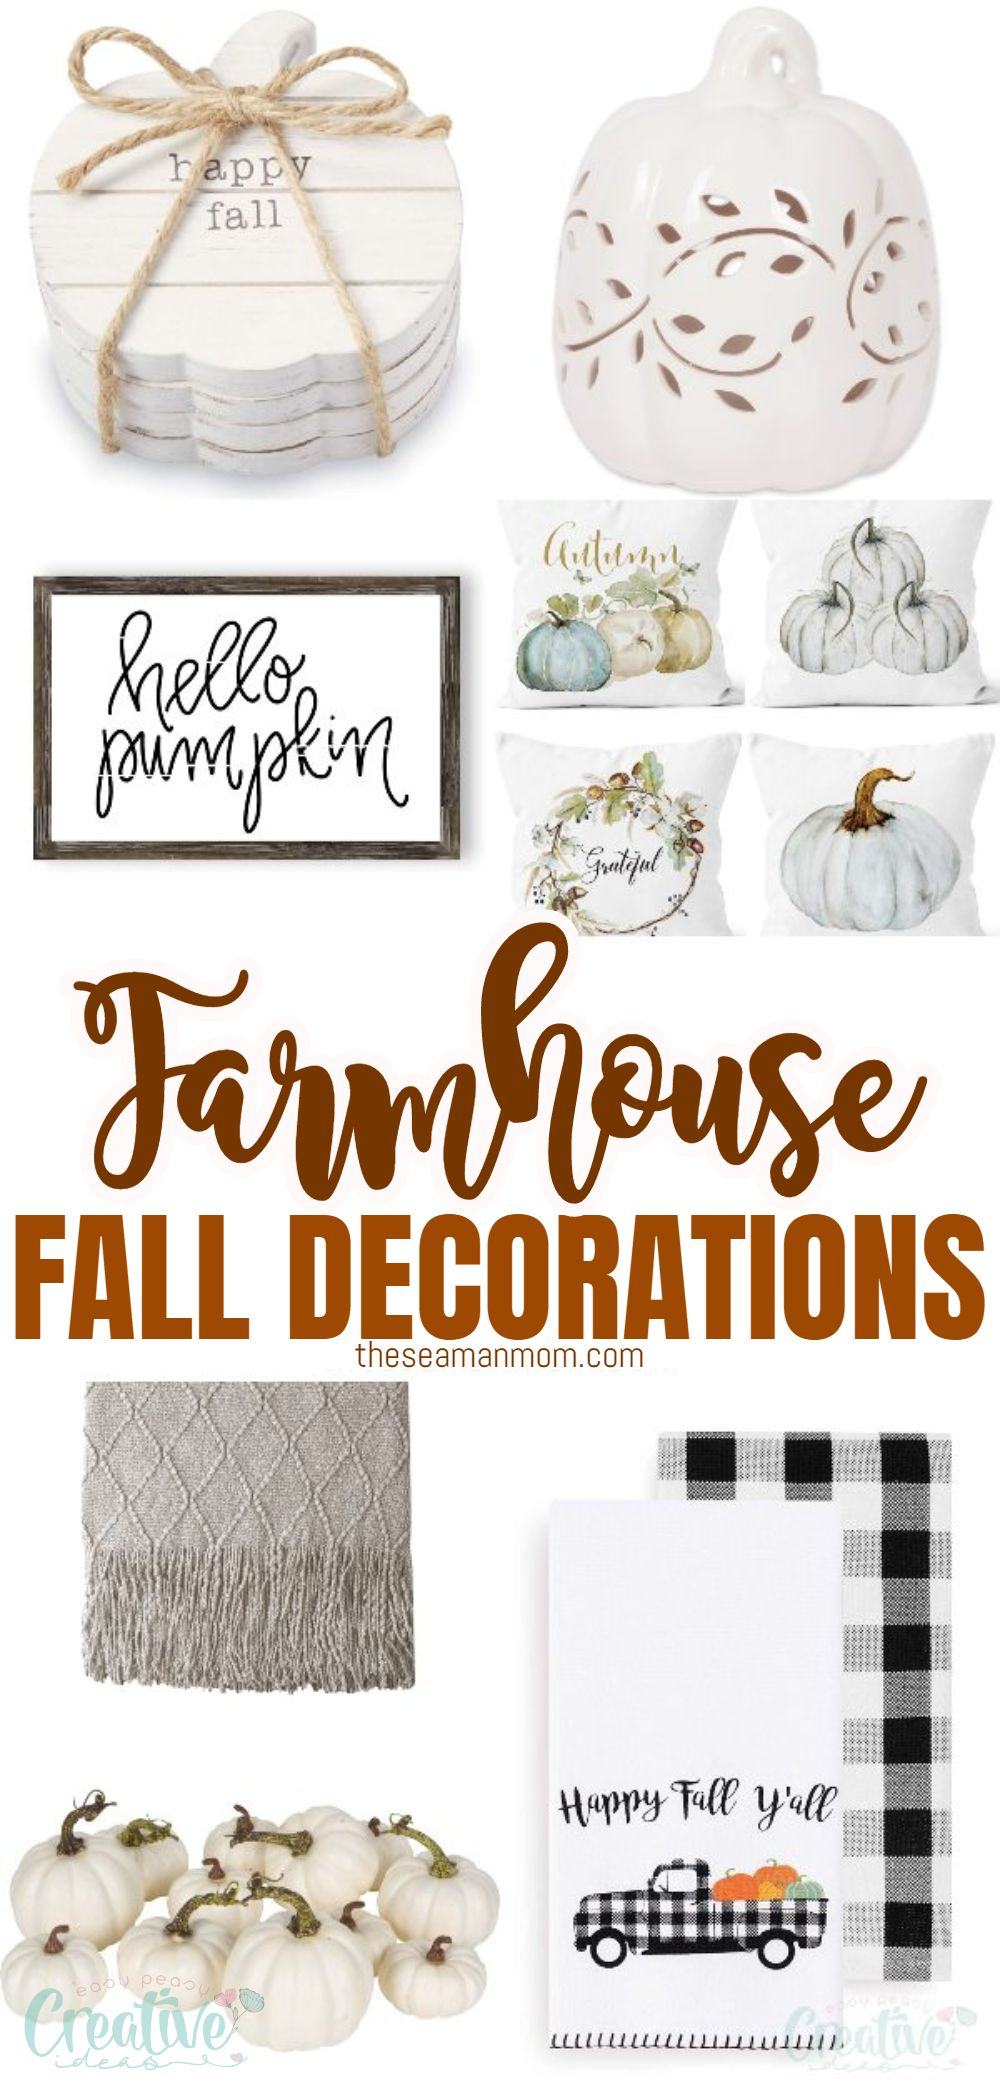 If you've been looking for ideas for farmhouse fall decorations for your living room, bedroom, kitchen and any room you want to decorate in country charm, you'll absolutely love these farmhouse décorideas! via @petroneagu